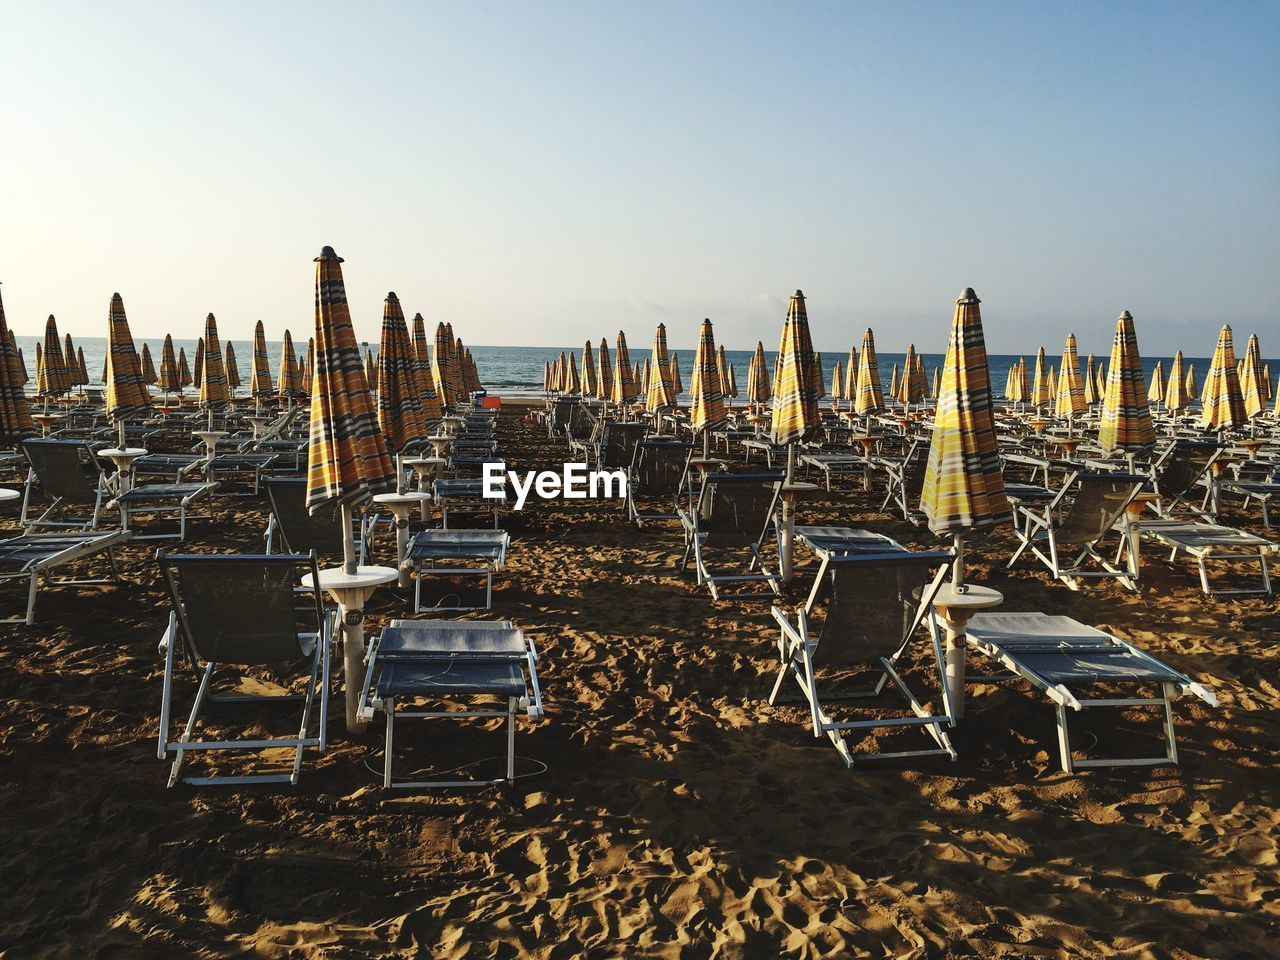 sky, chair, in a row, clear sky, nature, large group of objects, beach, seat, land, no people, lounge chair, absence, sea, tranquility, arrangement, water, parasol, day, sand, outdoors, order